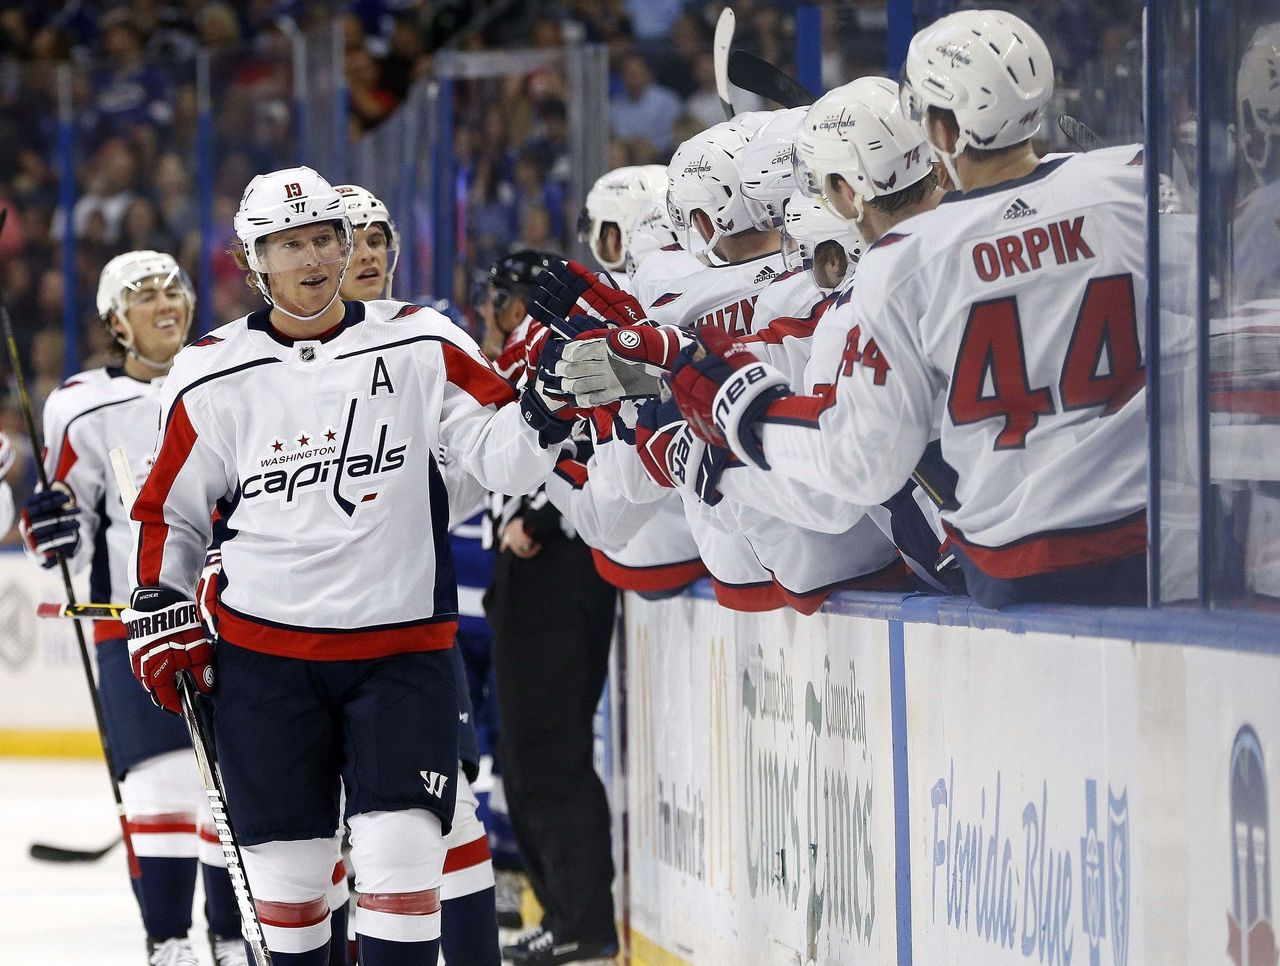 Cropped 2017 10 10t015503z 2051309249 nocid rtrmadp 3 nhl washington capitals at tampa bay lightning